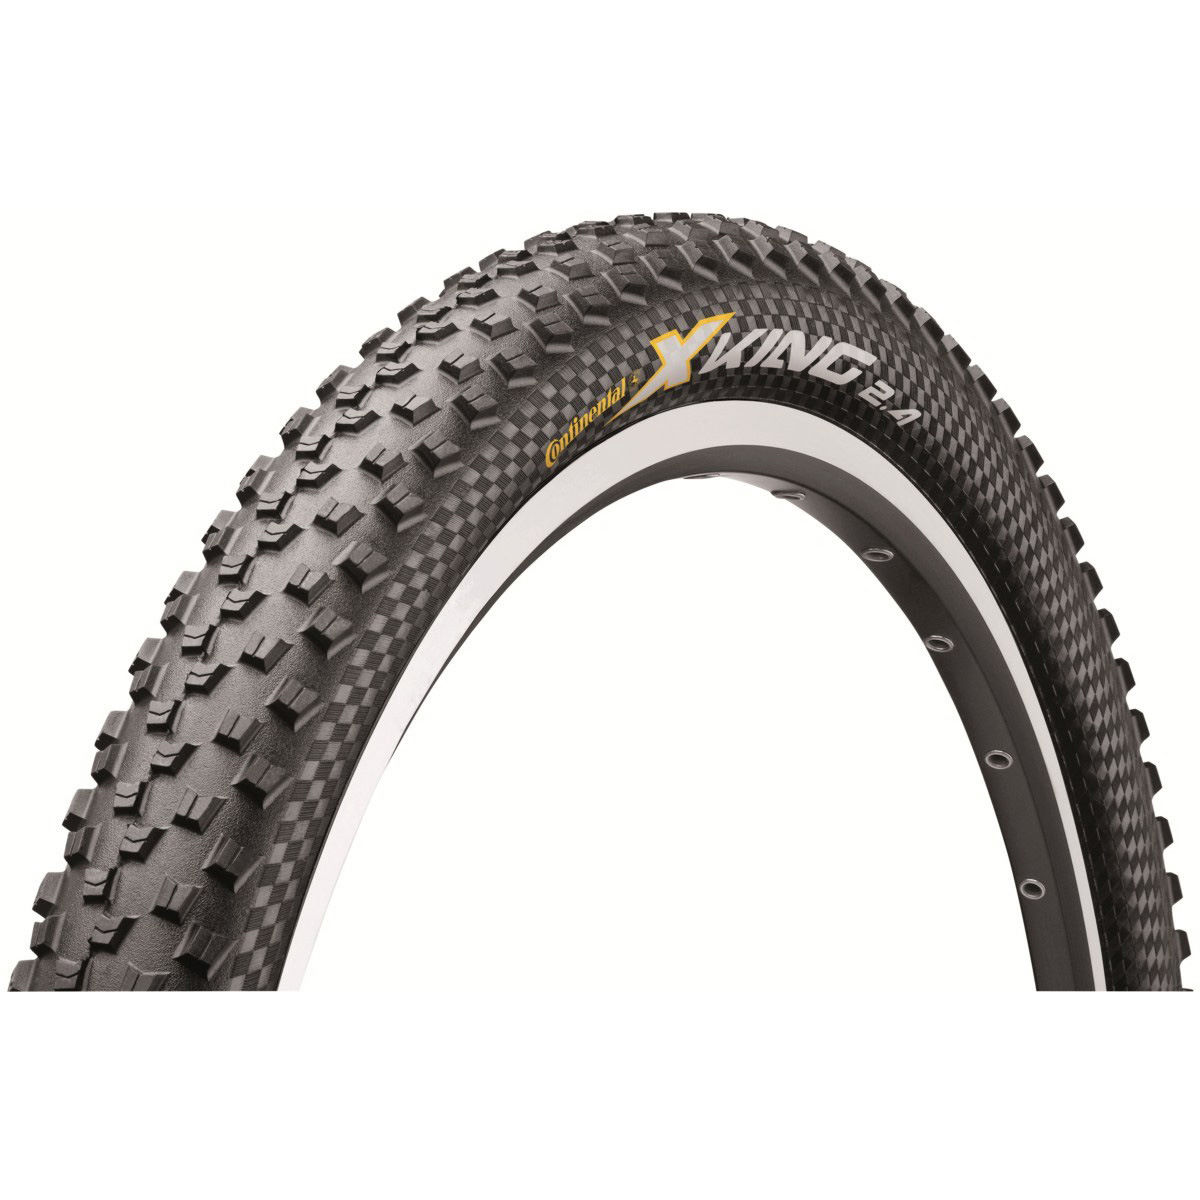 Pneu VTT Continental X King ProTection (souple) - 2.2' 26' Noir